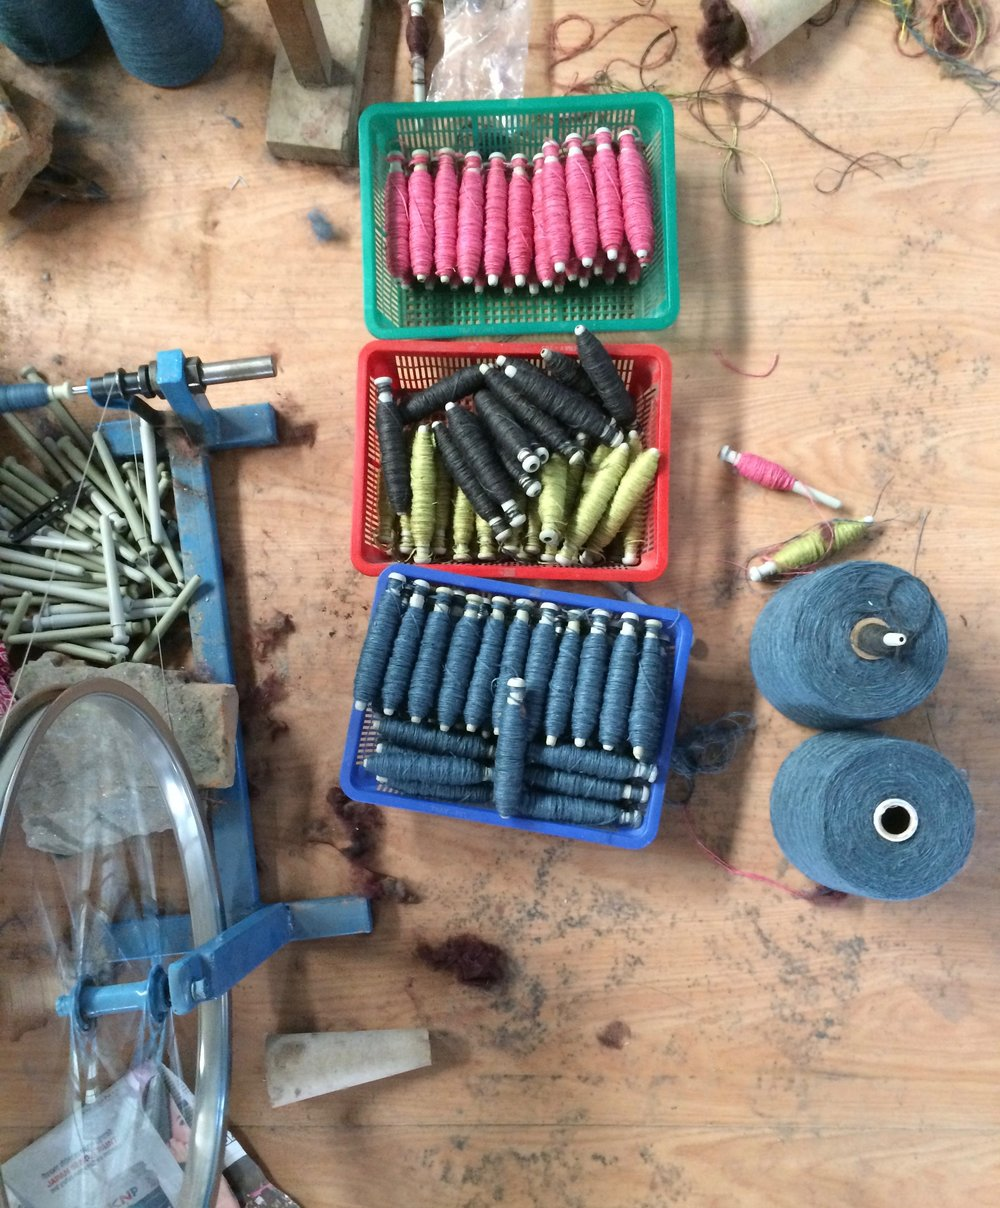 Bobbins ready for weaving